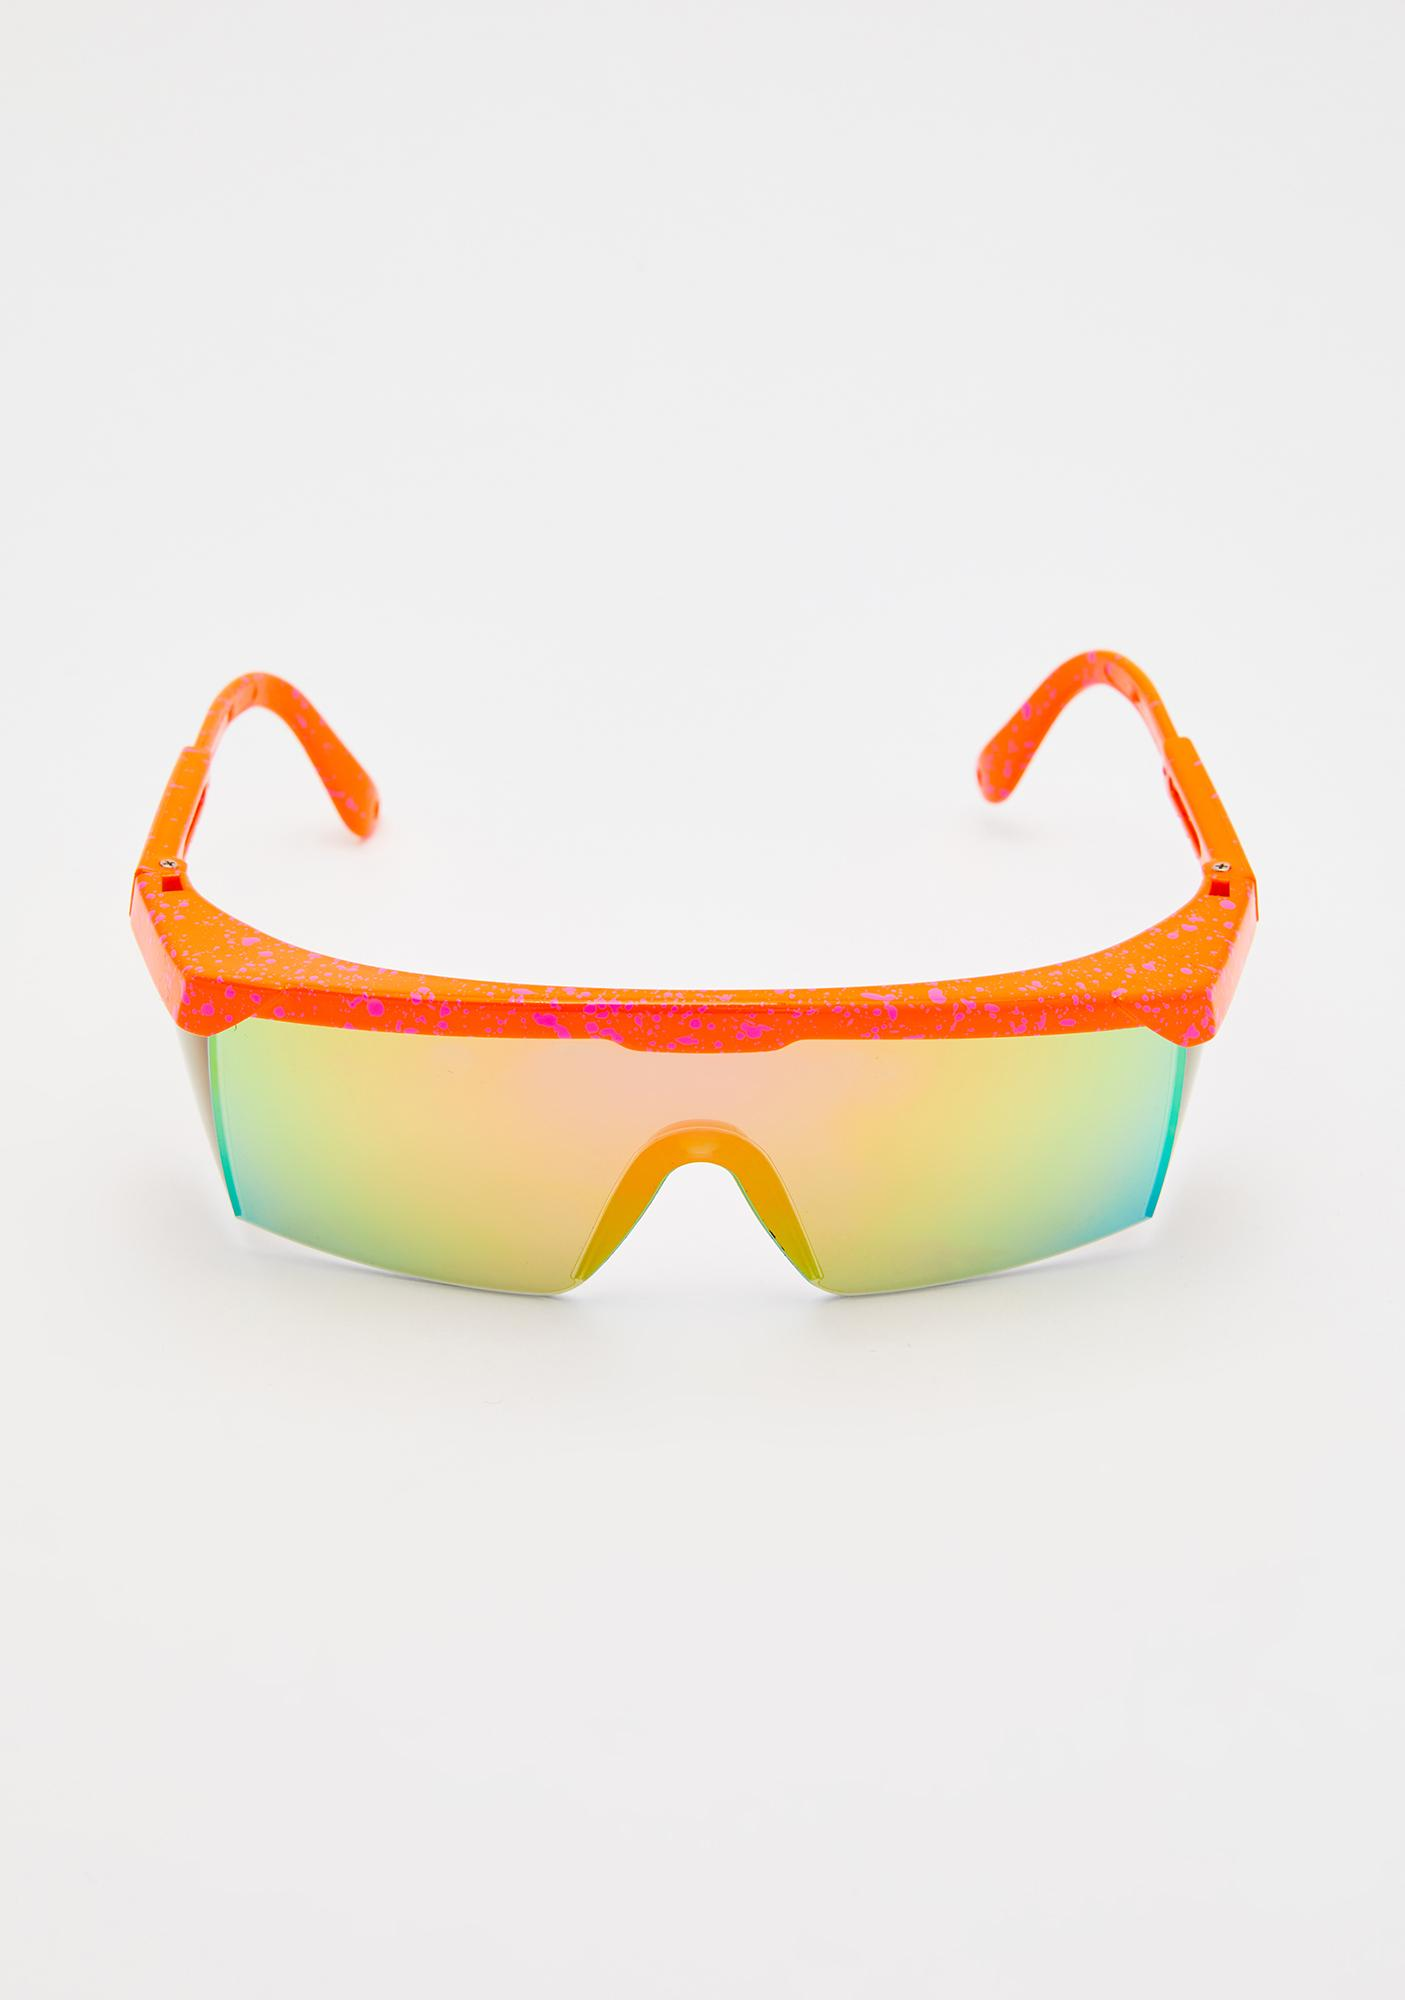 Citrus Hydro Bliss Shield Sunglasses